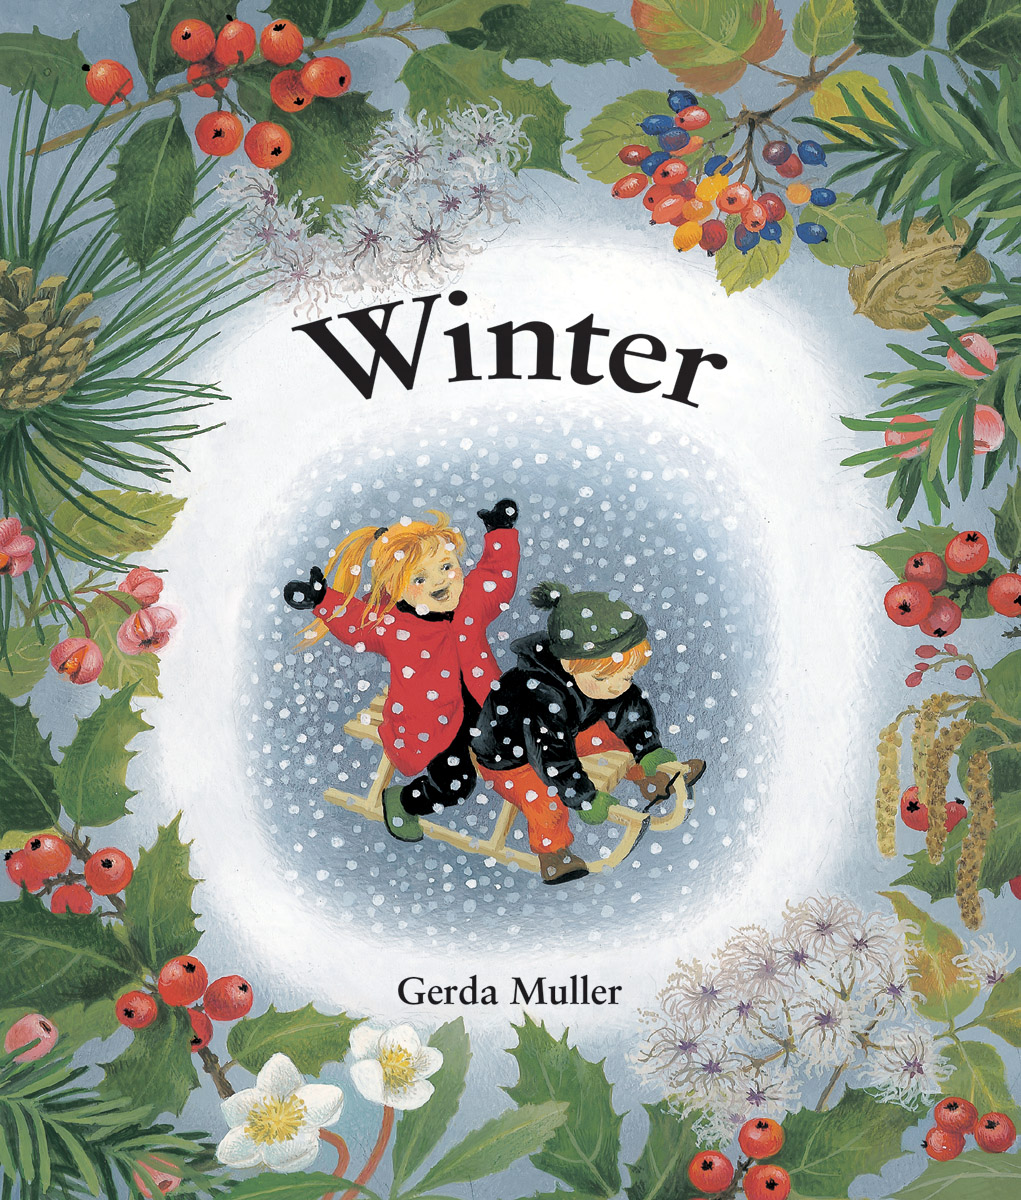 Winter Illustrated Book - Floris Books